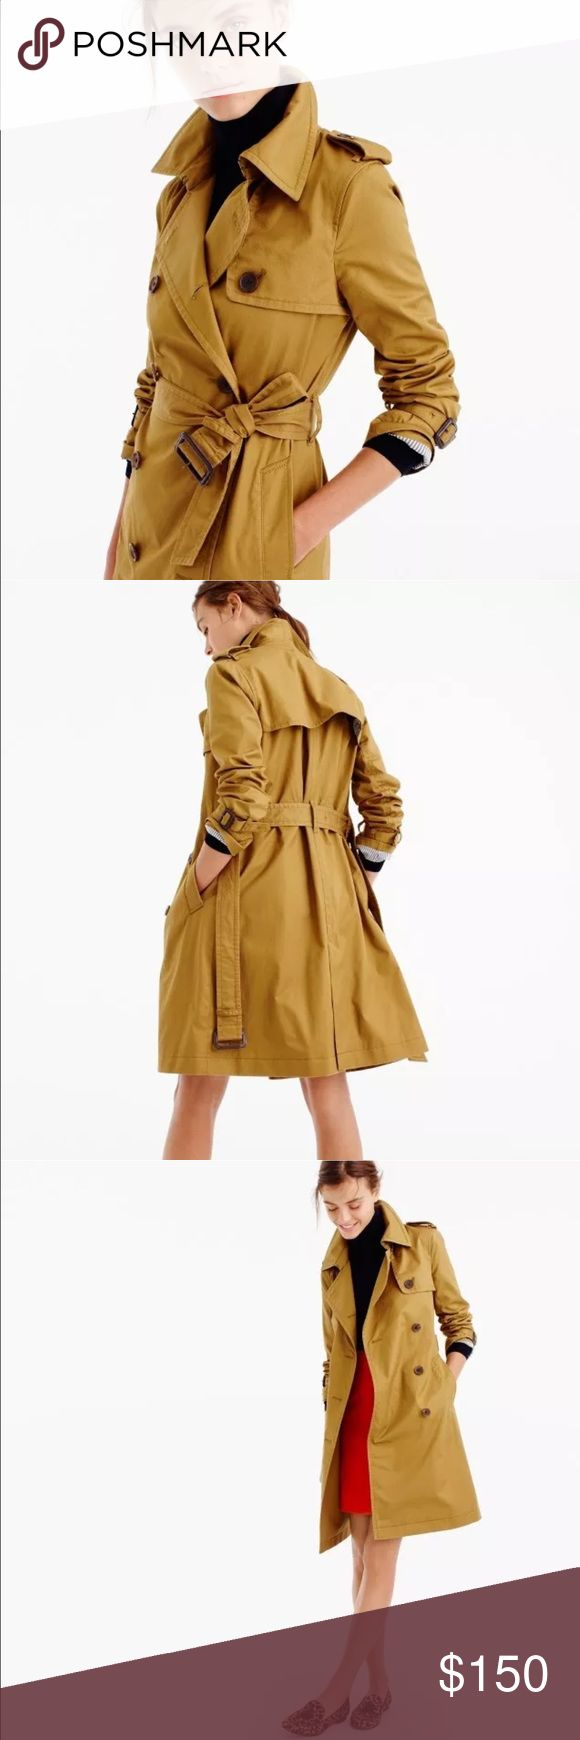 """NWT J. Crew 2016 Petite City Trench Coat size & fit •Tailored for a fitted look. •Body length: 37 1/4"""". •Sleeve length: 30 7/8"""". •Hits above knee.   Product Details  Meet the city trench: Featuring a longer length and more-refined cotton fabric with a slight sheen, it's the perfect transitional layer that looks great over jeans, dresses, pencil skirts...pretty much everything. Oh, and it only gets better year after year. •Cotton. •Notch collar. •Side-entry welt pockets…"""